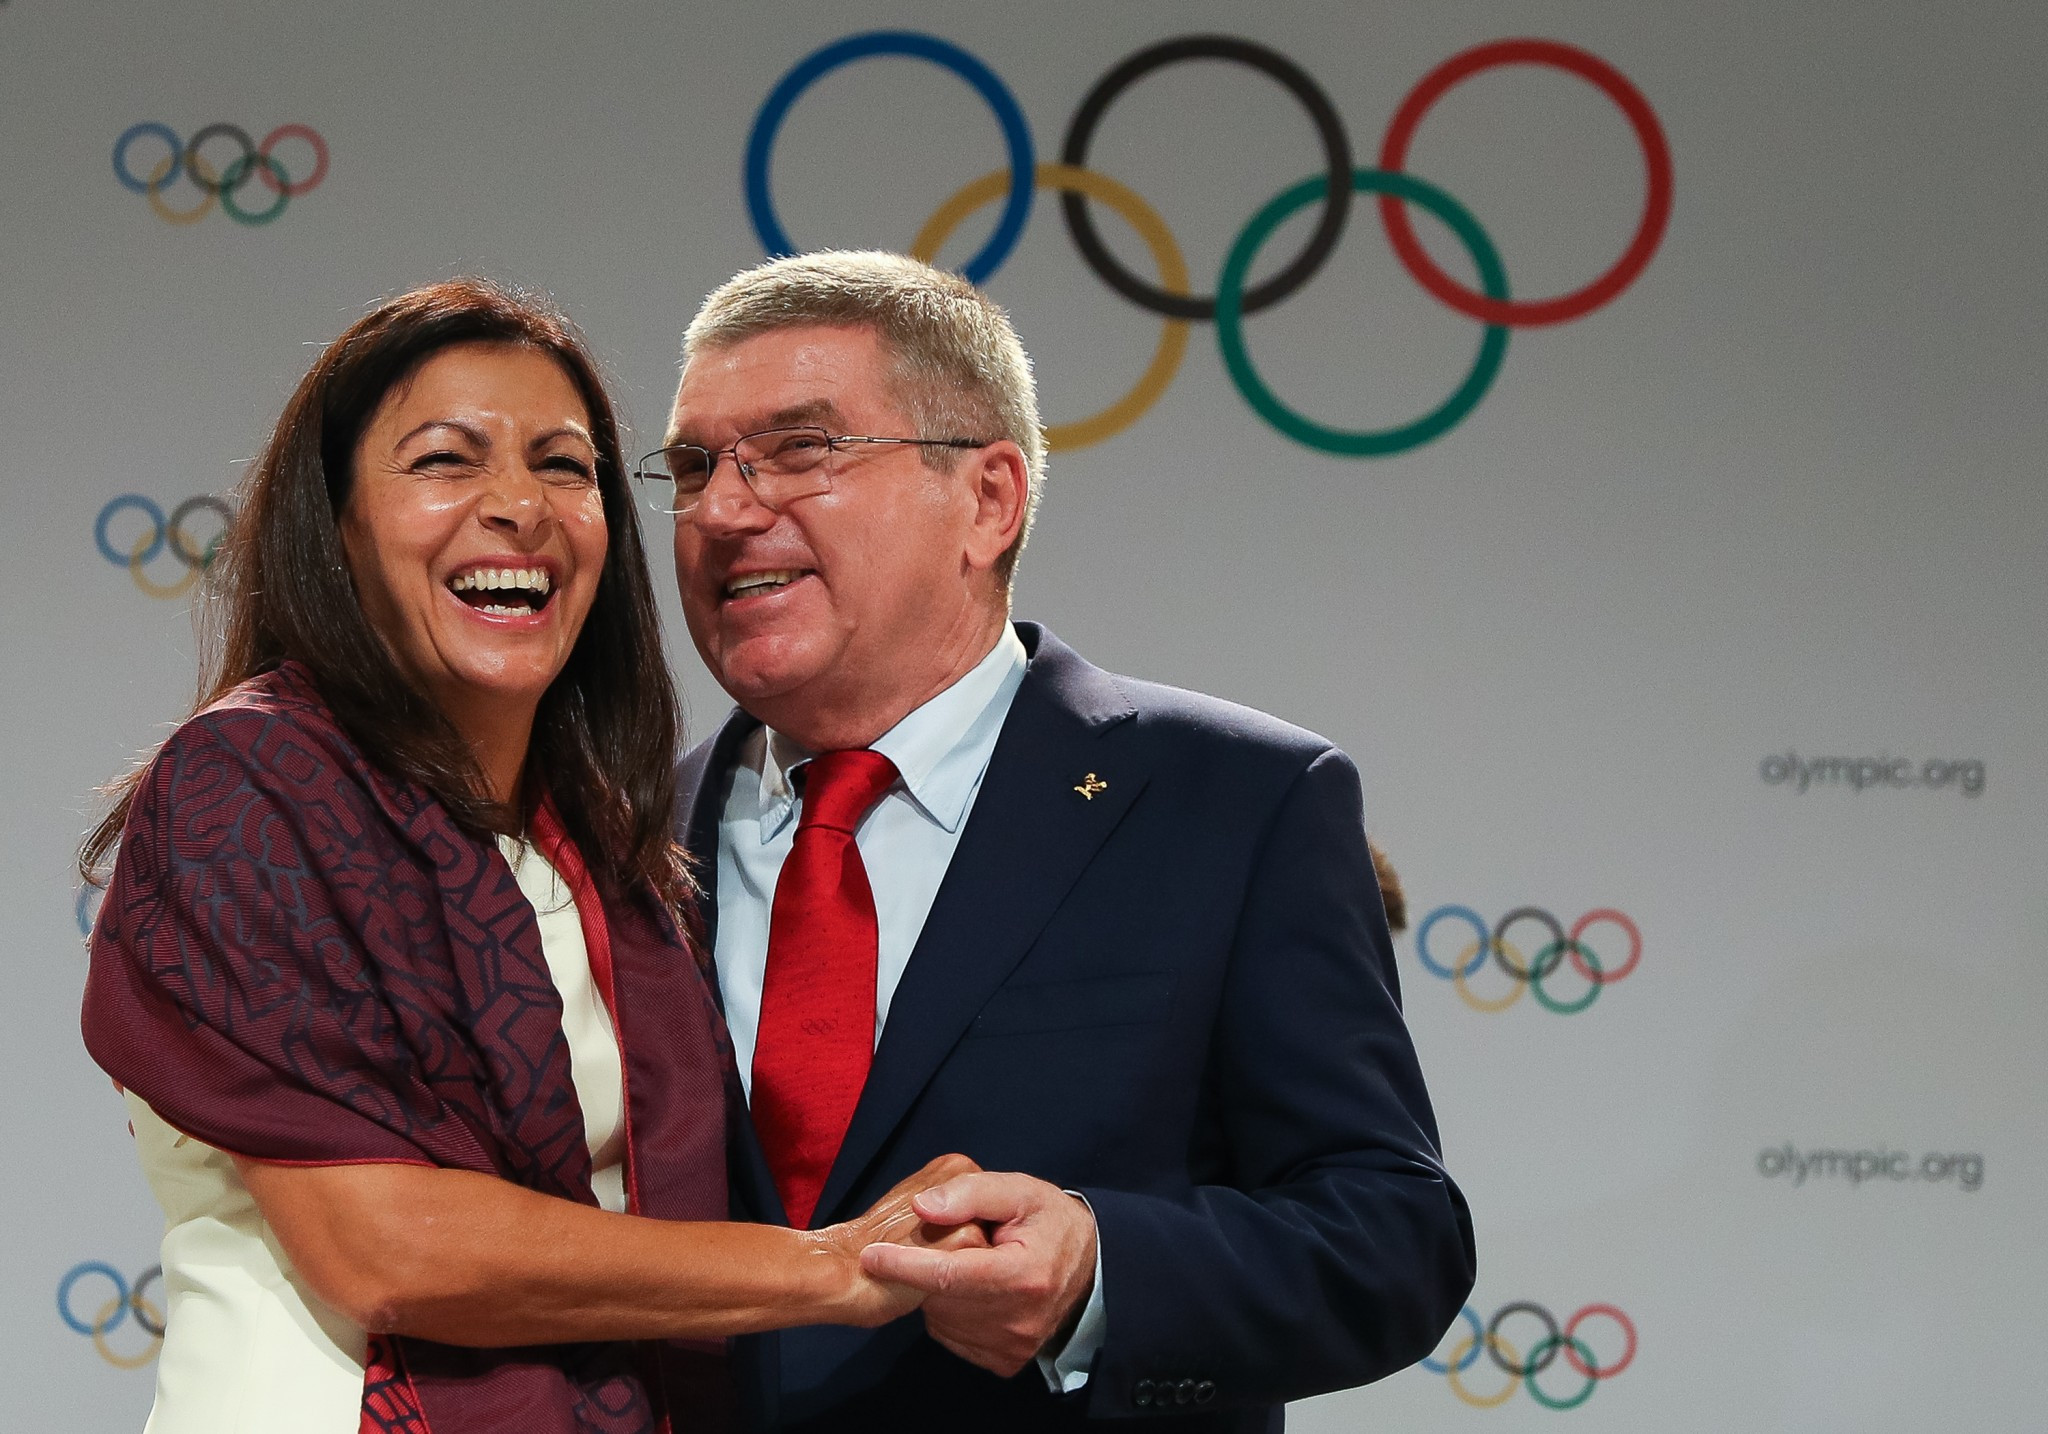 Paris Mayor Anne Hidalgo claimed the Games would regenerate both cities ©Getty Images